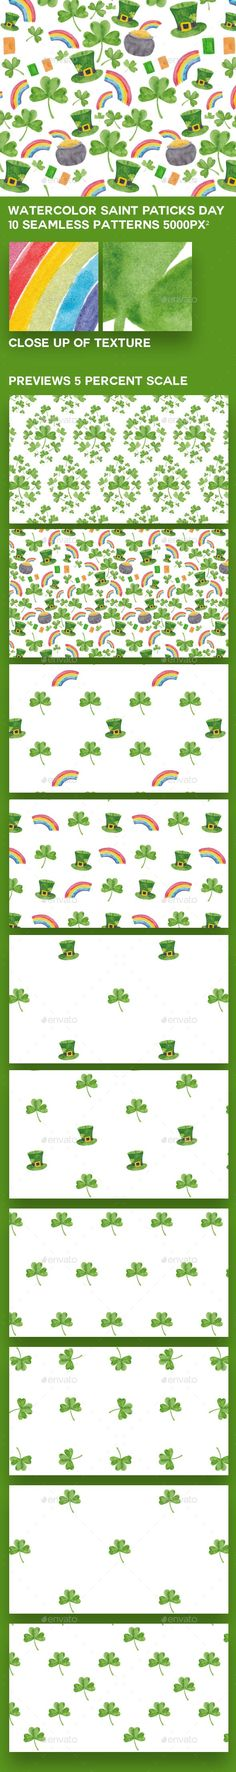 Buy 10 Saint Patrick's Day Watercolour Patterns by ElaineDettmann on GraphicRiver. Patrick's Day patterns with hand-painted watercolour elements including, Shamrocks, rainbows, lucky hat. Watercolor Pattern, Watercolour, Background Images Wallpapers, Backgrounds, St Patricks Day, Saint Patricks, Pot Of Gold, Background Patterns, Saints